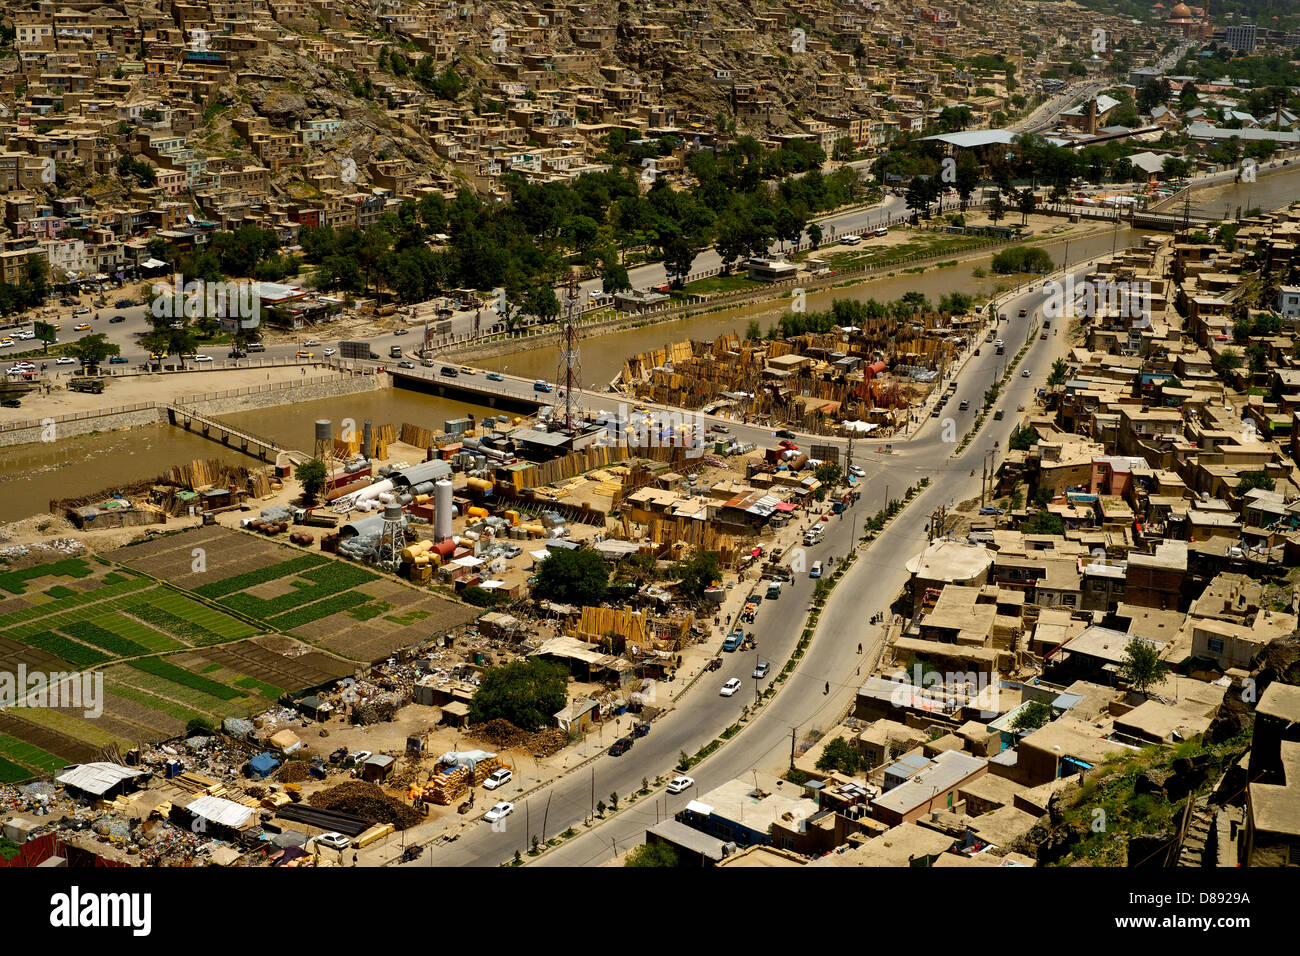 View from above of a Kabul road that runs alongside a river - Stock Image